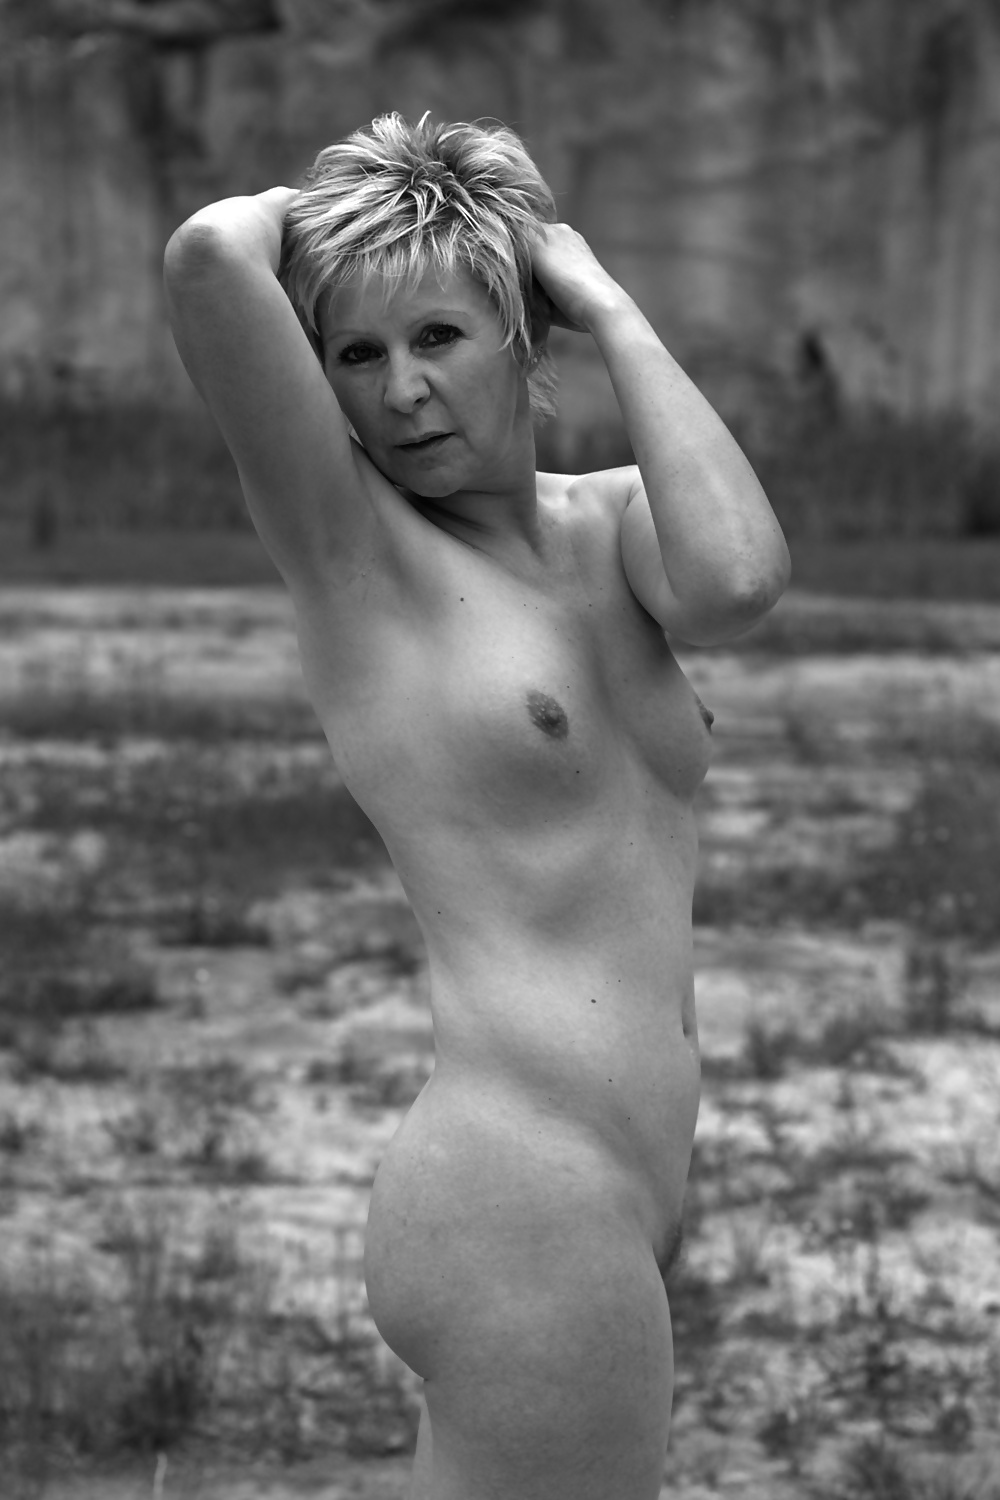 http://hotamateurmature.com/gallery/Mature_housewives_and_sexy_grannies_16/12.jpg